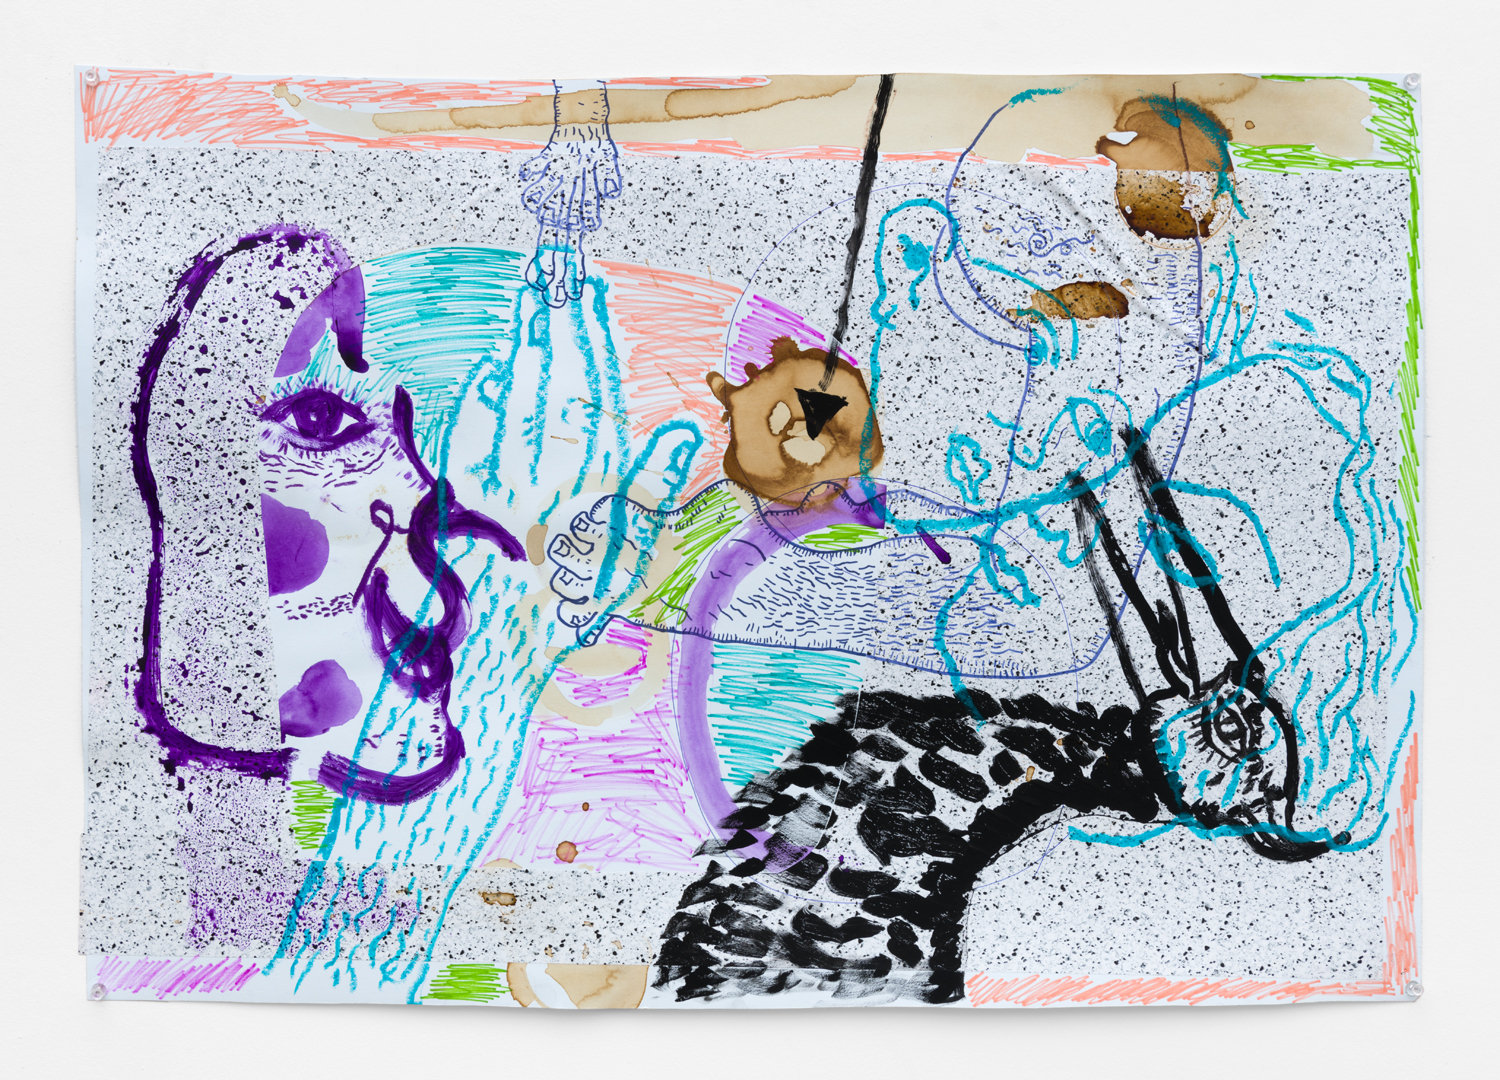 Benjamin Weissman & Ravi Jackson  Untitled, 2017  Pastel, pencil, marker and watercolor on paper  20.5 x 30 inches